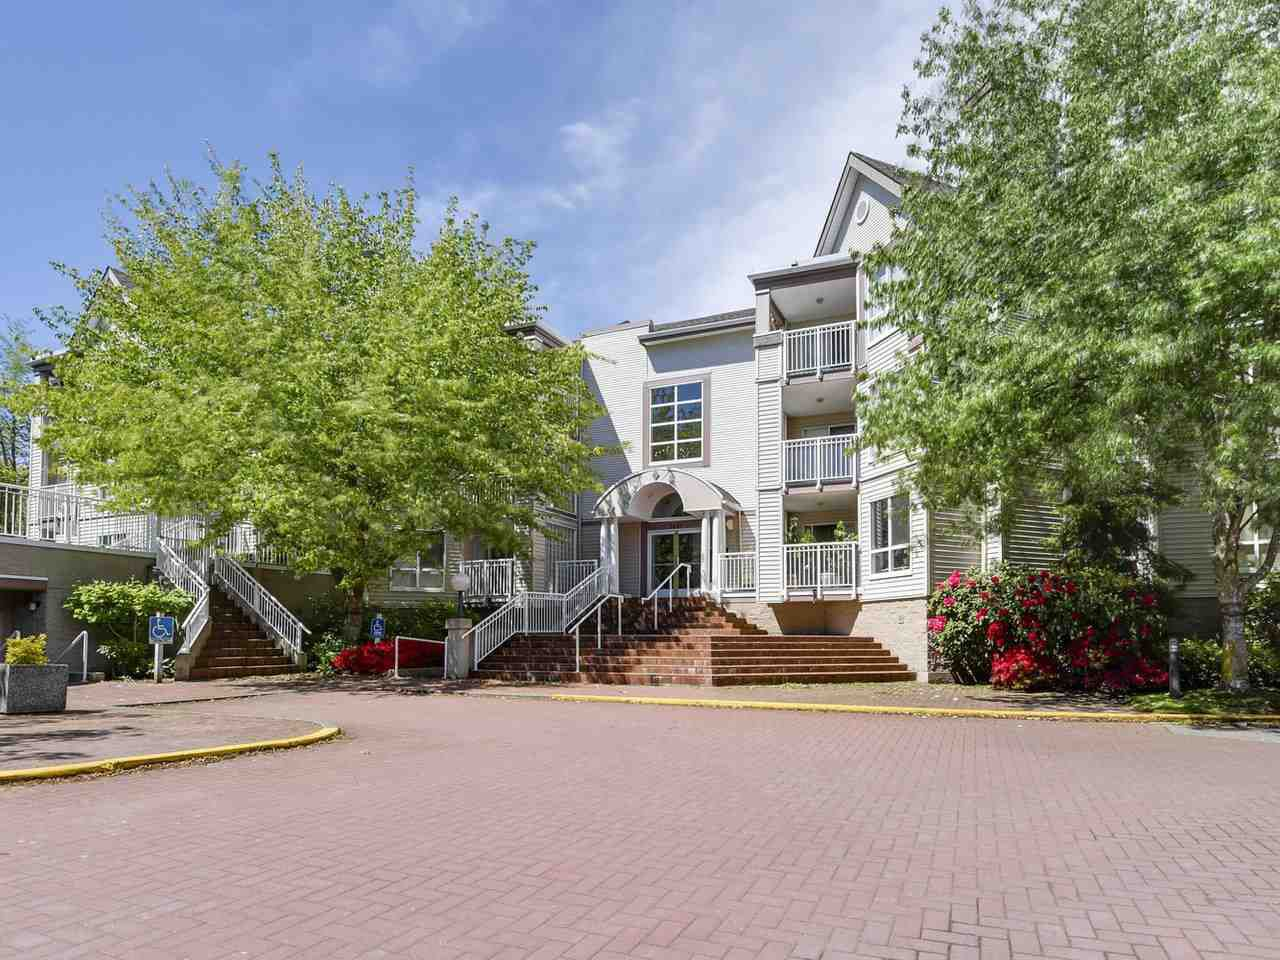 Main Photo: 135 7451 MOFFATT ROAD in Richmond: Brighouse South Condo for sale : MLS®# R2168796